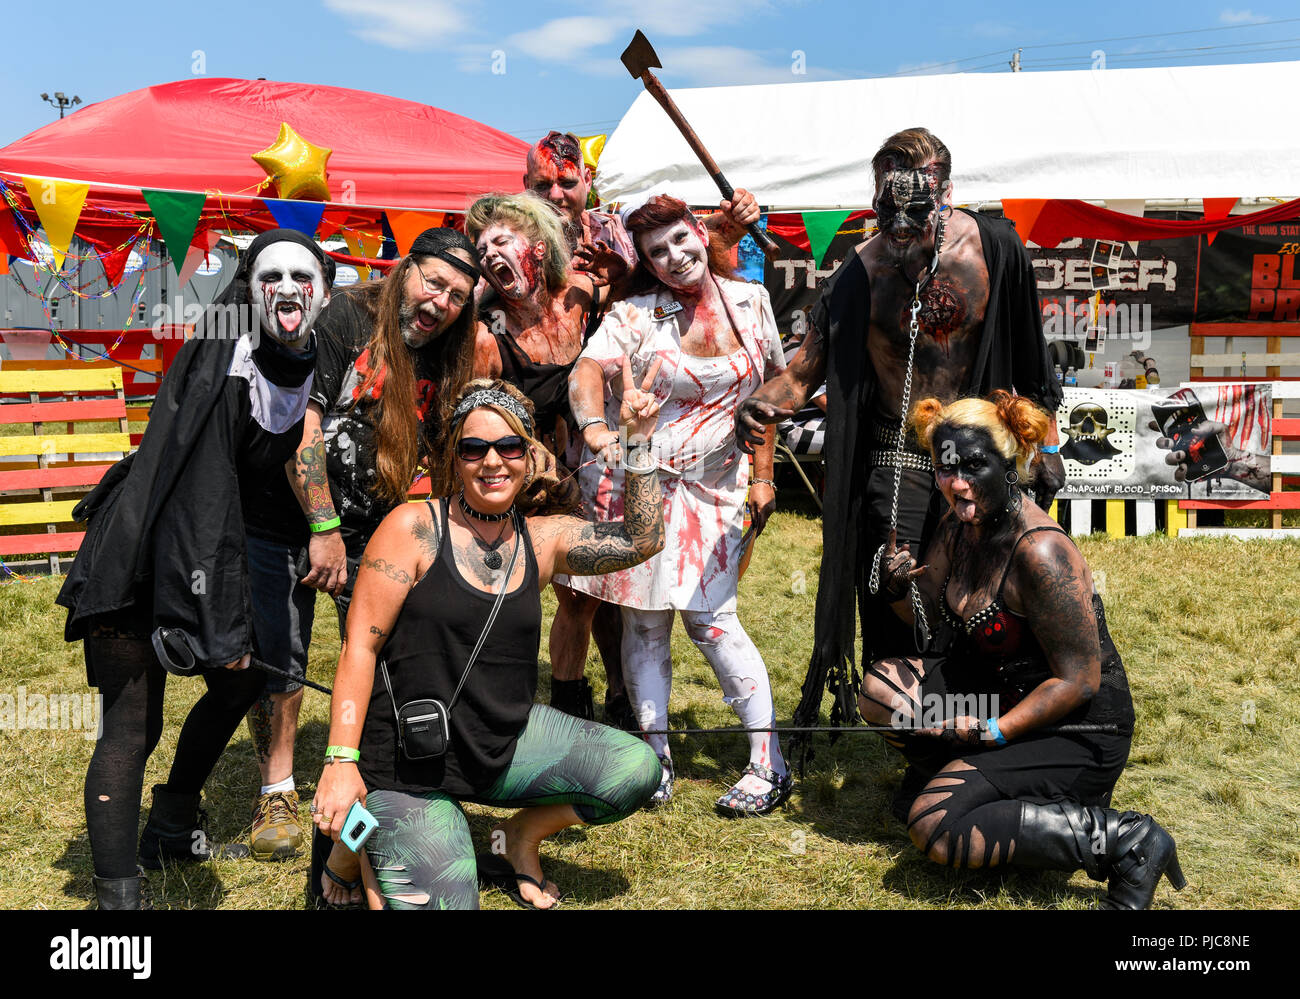 Mansfield, Ohio, July 15, 2018. Cosplay concert goers at the Inkarceration Fest 2018. Credit: Ken Howard/Alamy Stock Photo